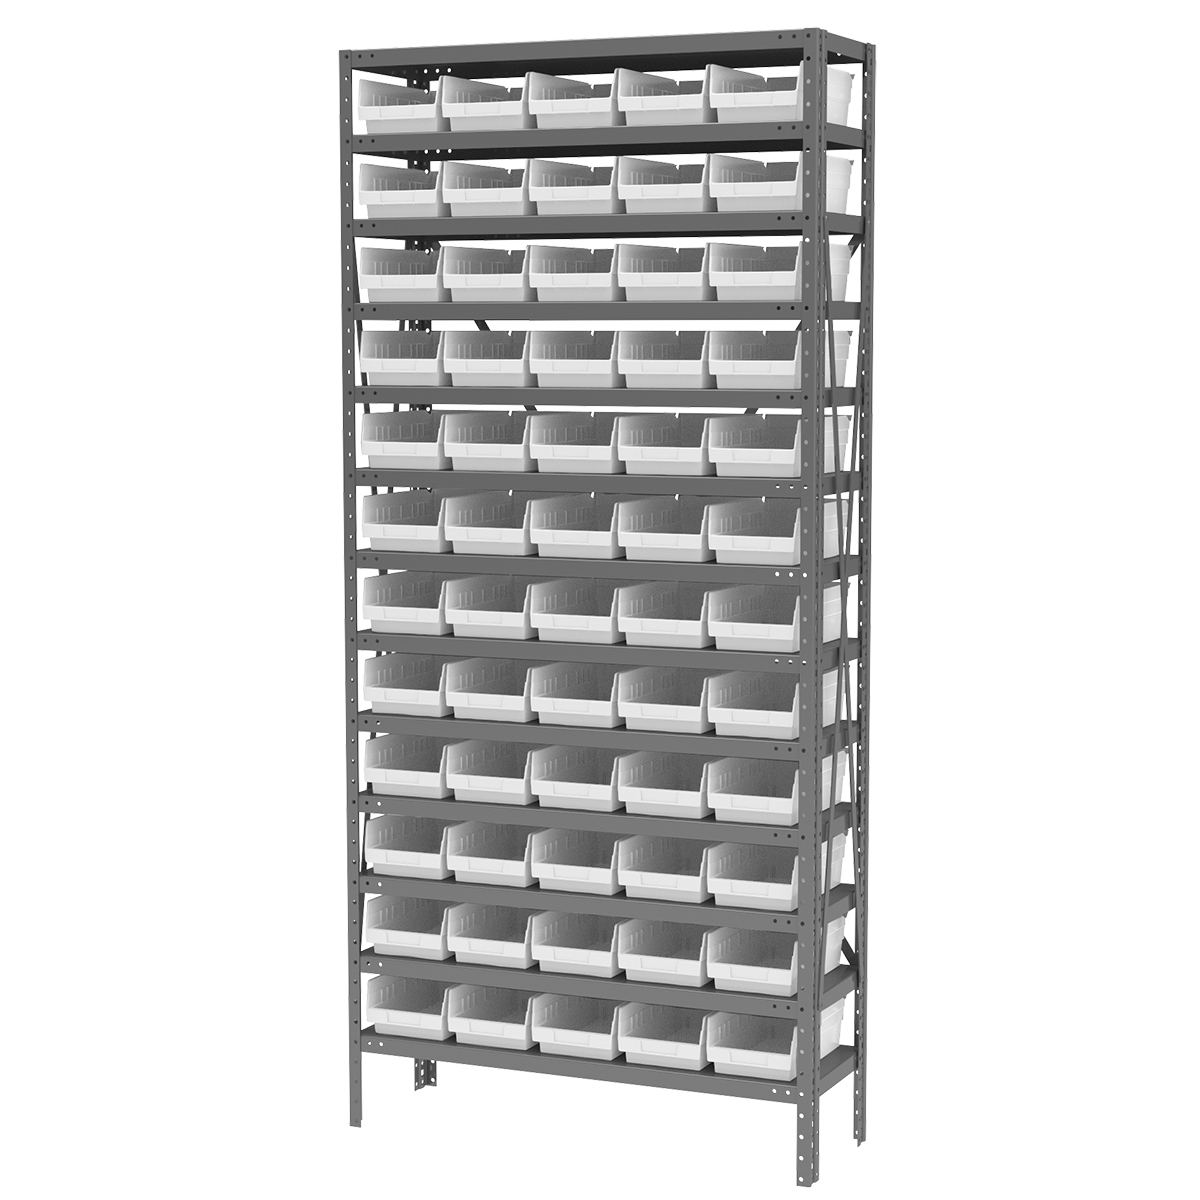 Steel Shelving Kit, 12x36x79, 60 Bins, Gray/White (AS1279130W).  This item sold in carton quantities of 1.